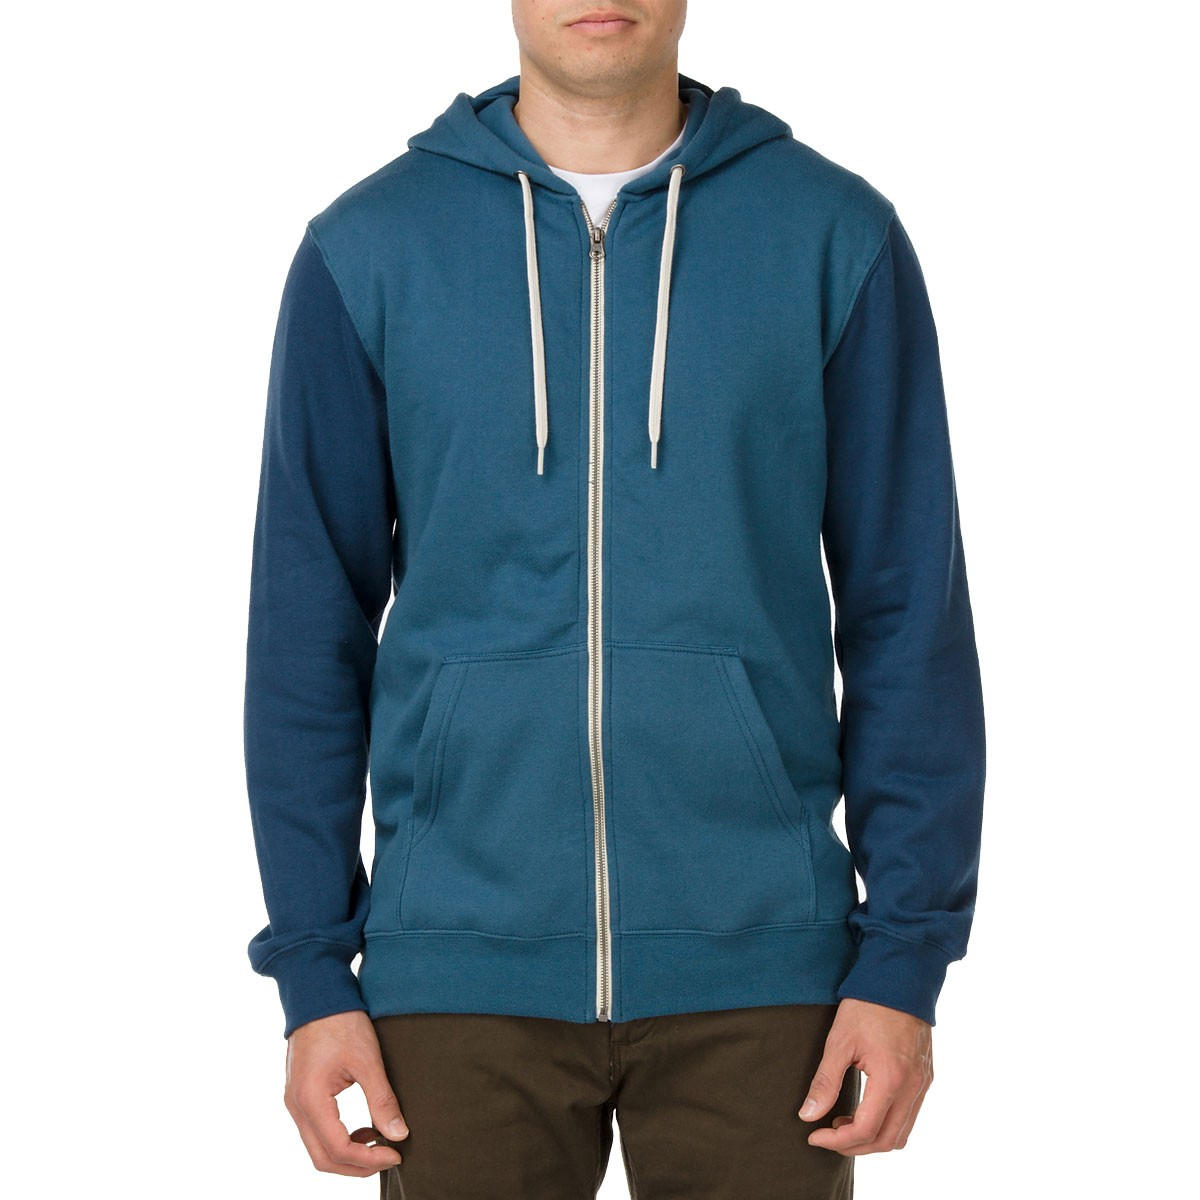 Vans Core Basics Colorblock Zip Hoodie - Indian Teal / Ice Water